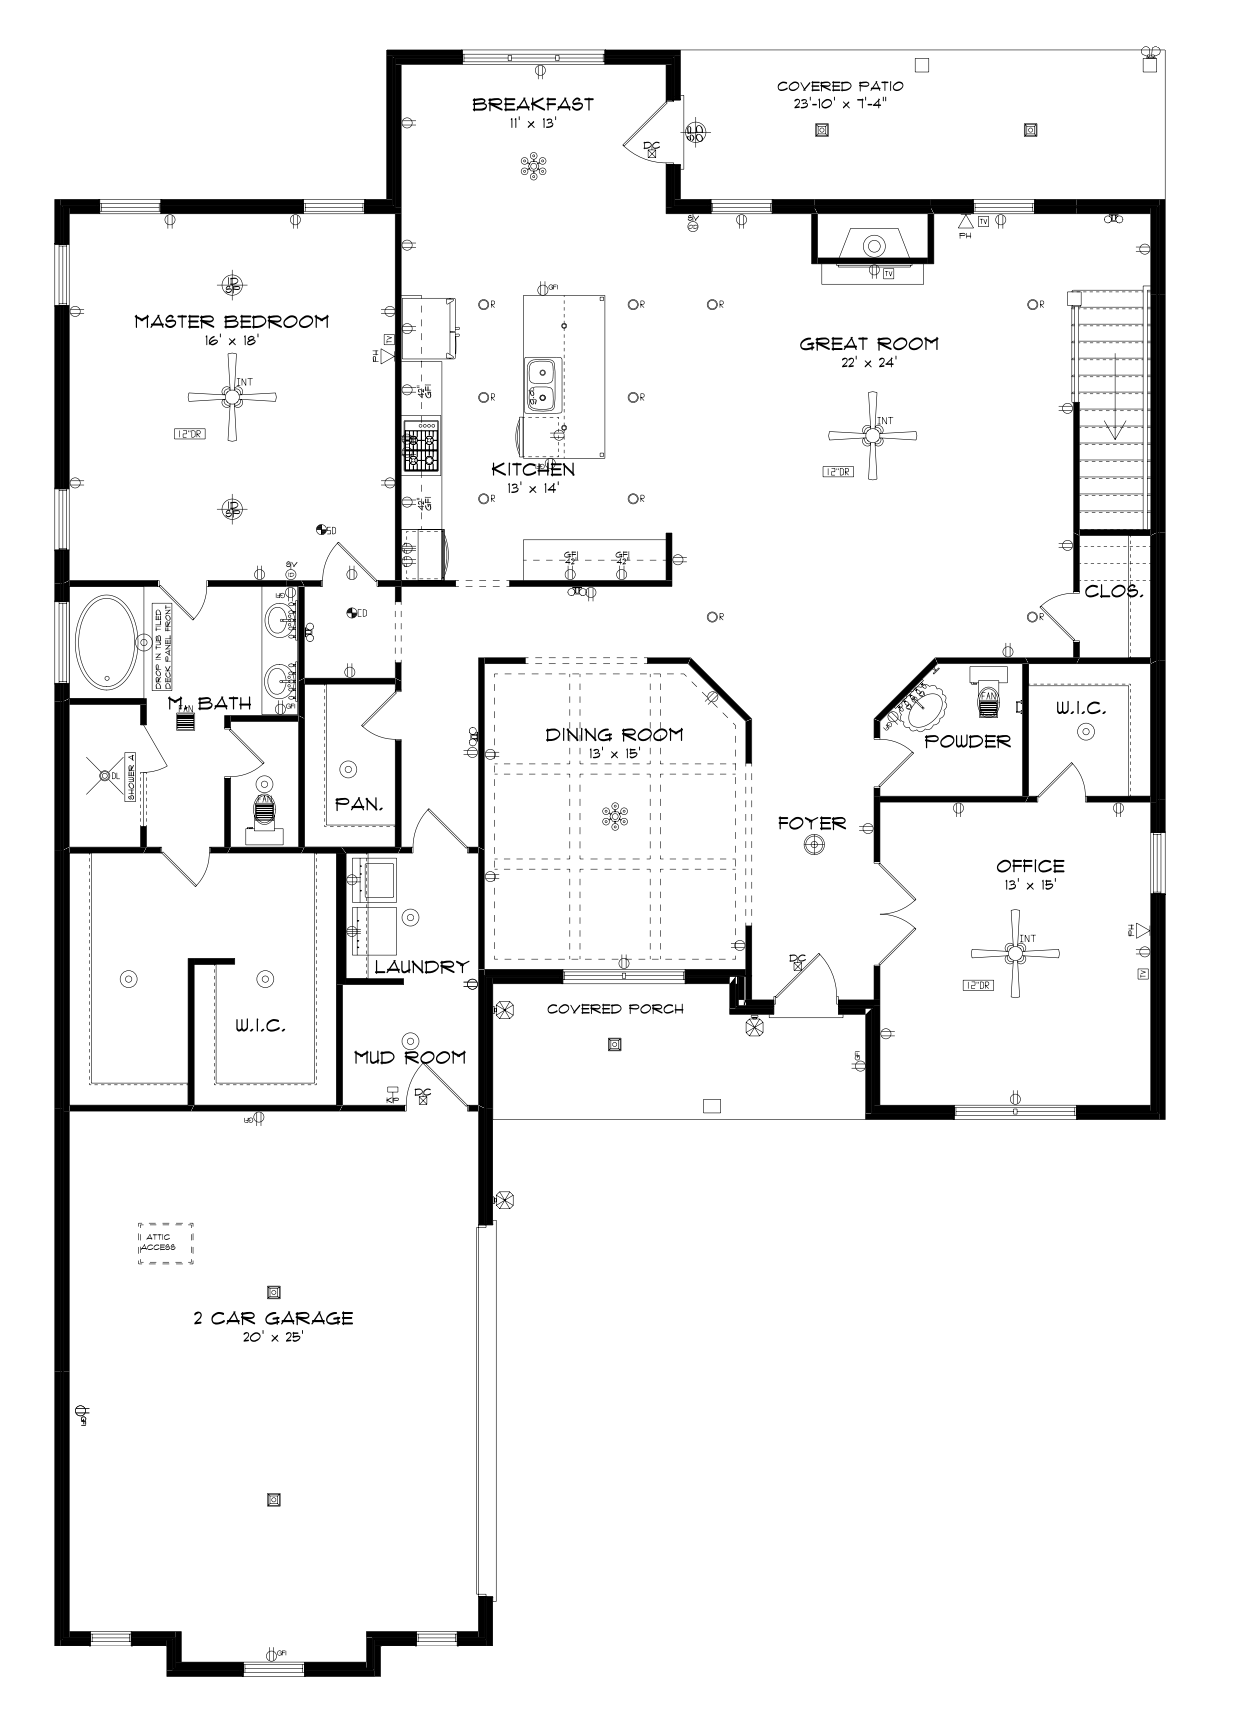 Attic drawing layout. Main floor stone martin